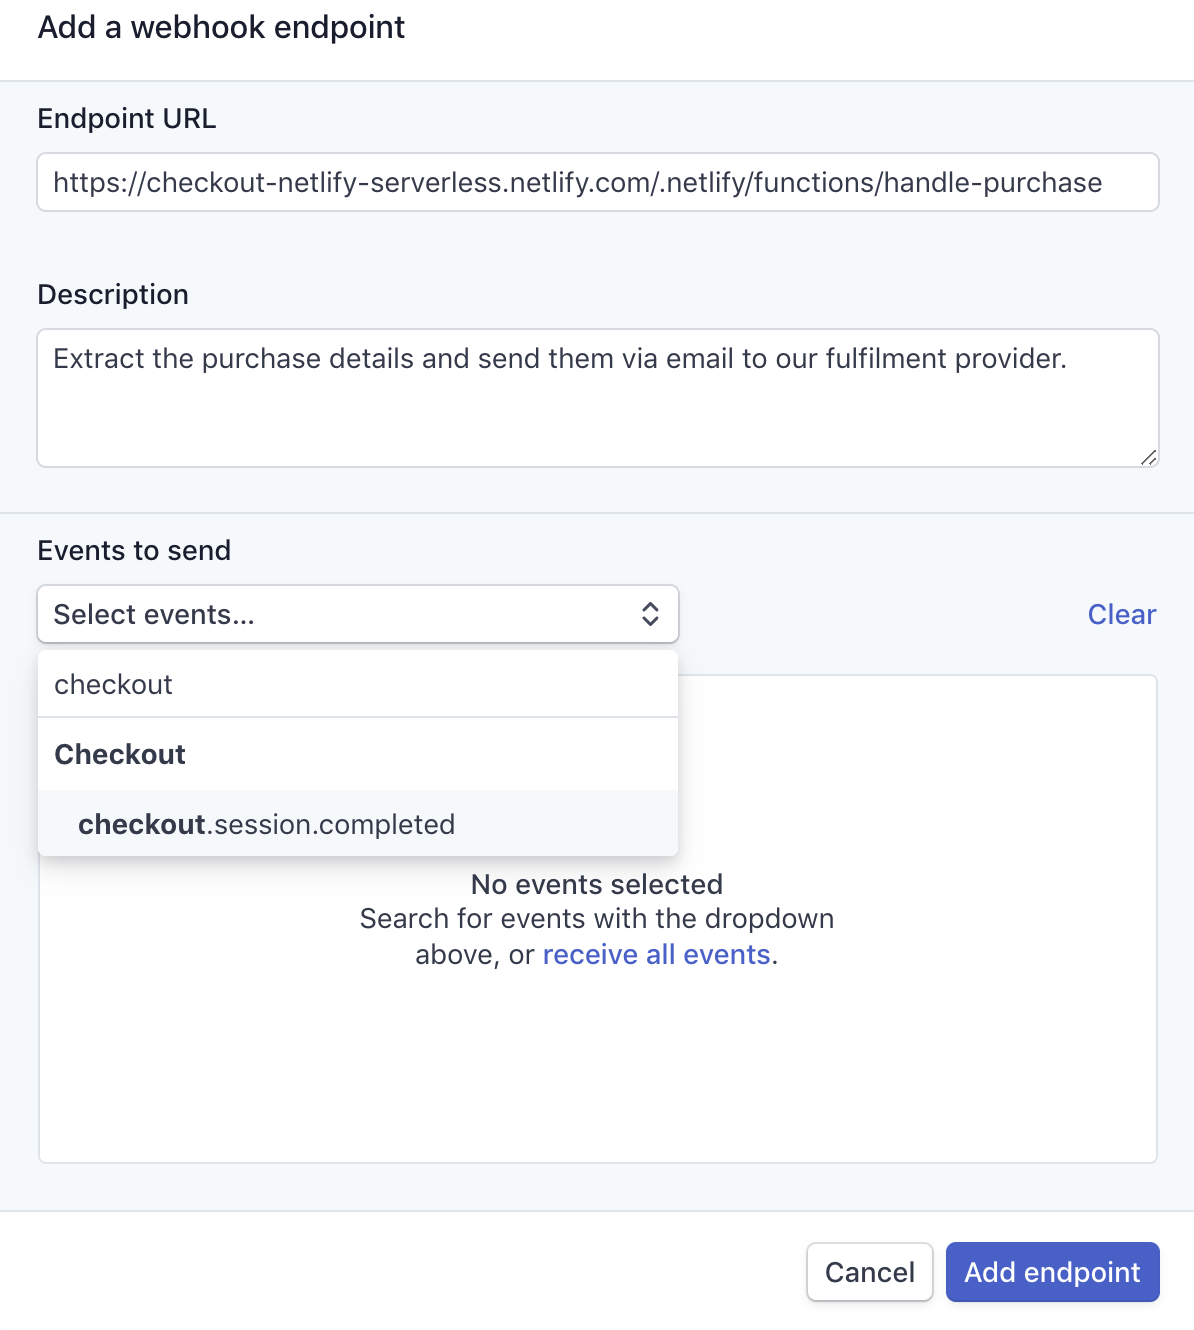 Add webhook endpoint screenshot